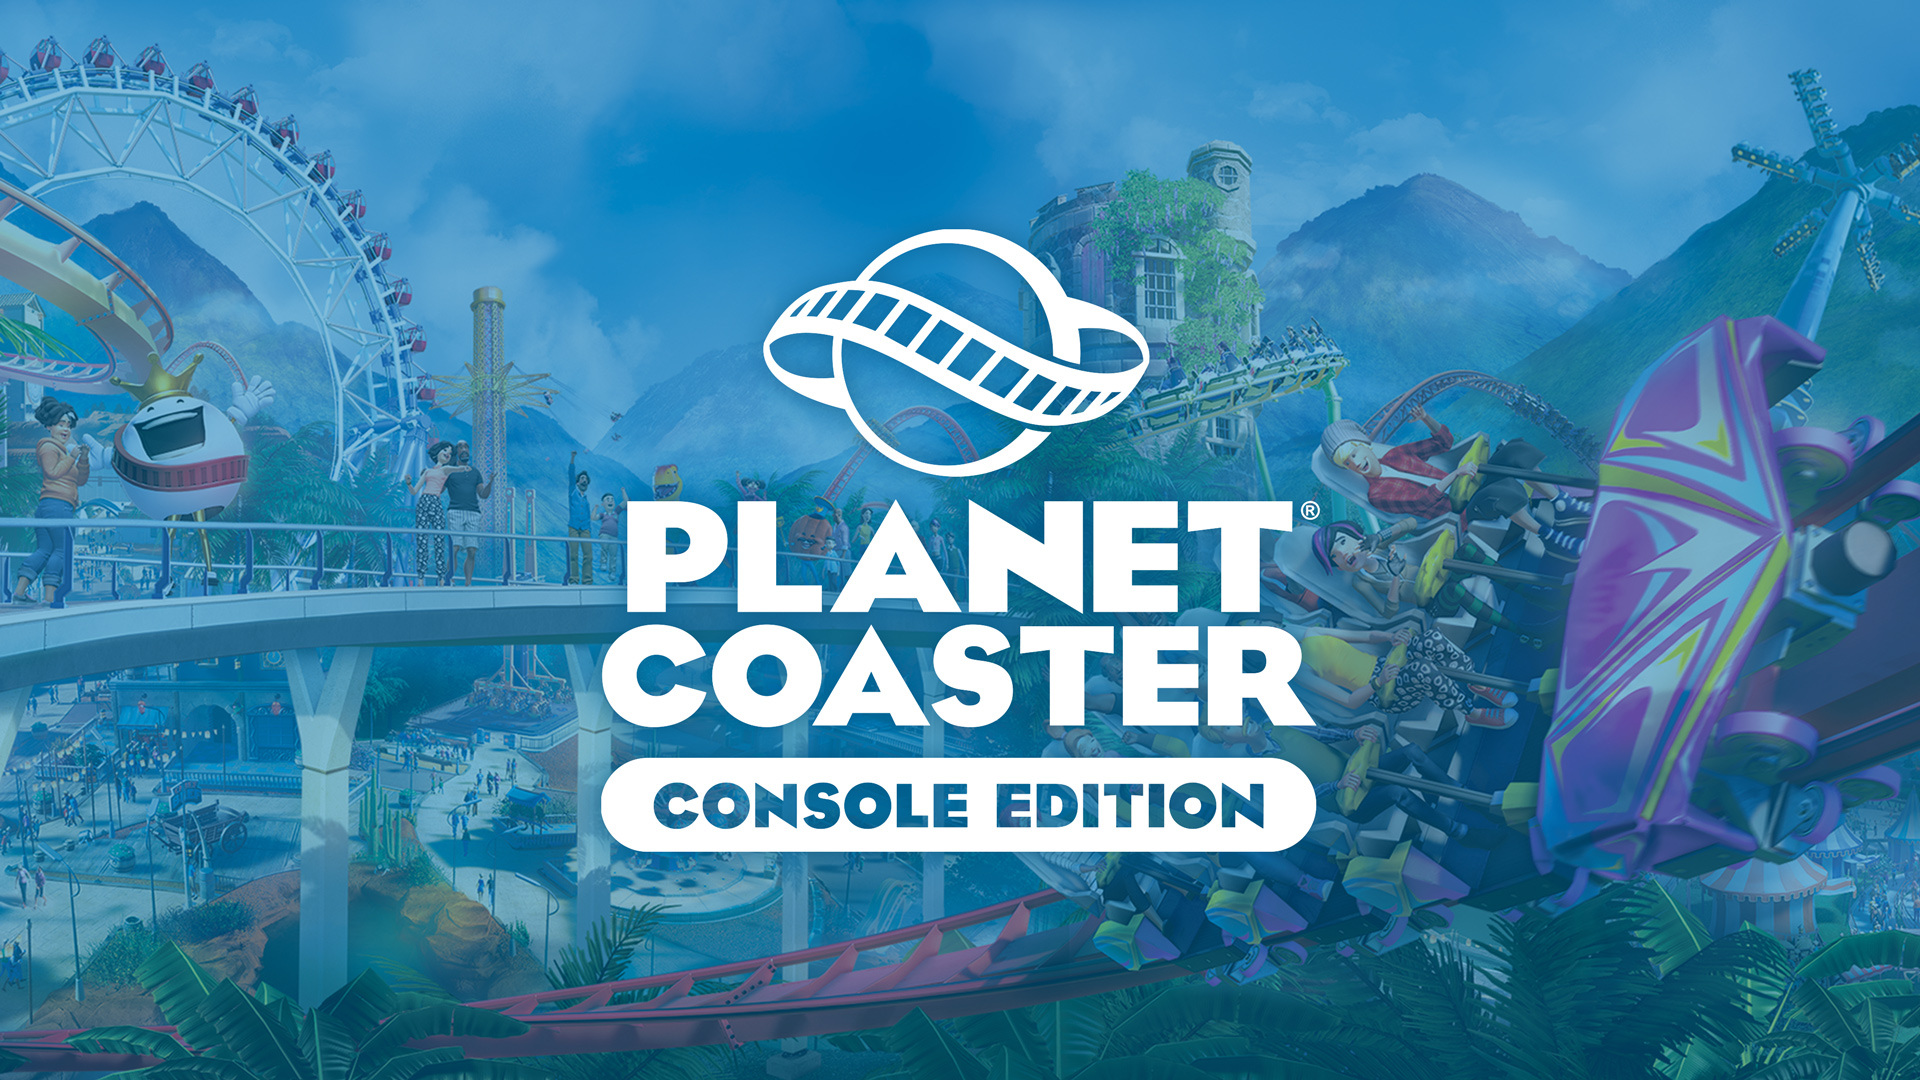 Planet Coaster arrives on Xbox One and PlayStation 4, Summer 2020 - Frontier